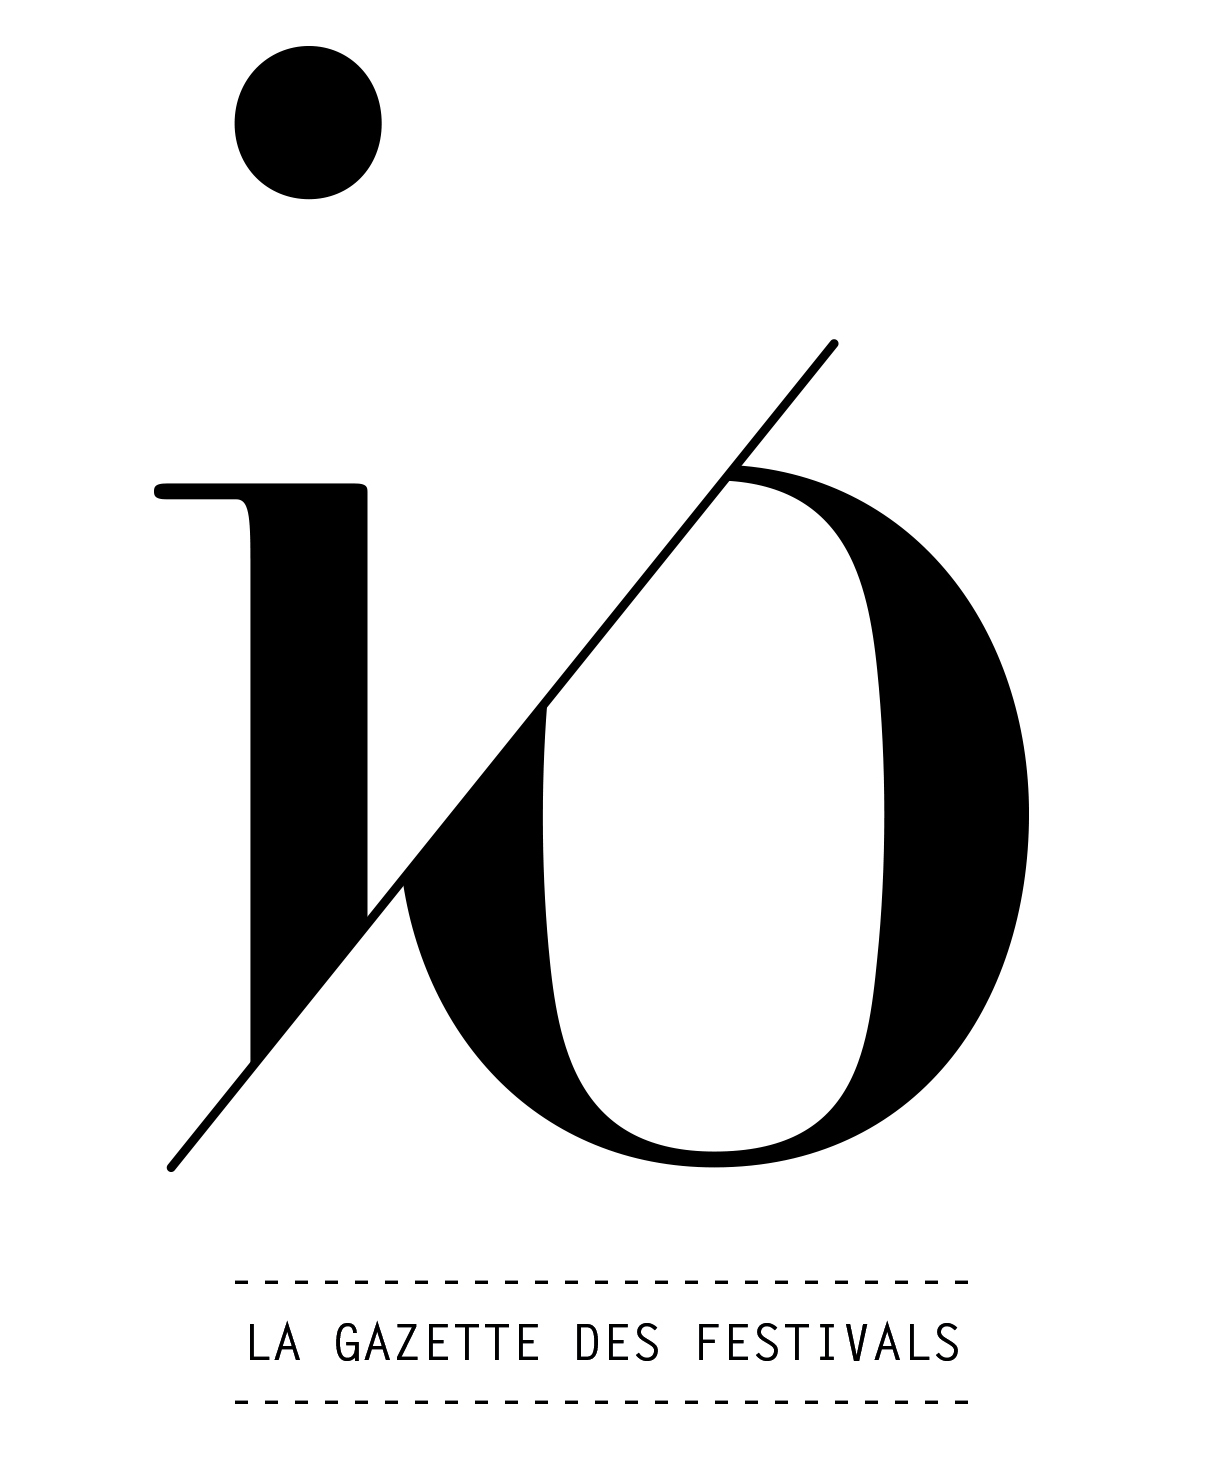 Logo I/O Gazette